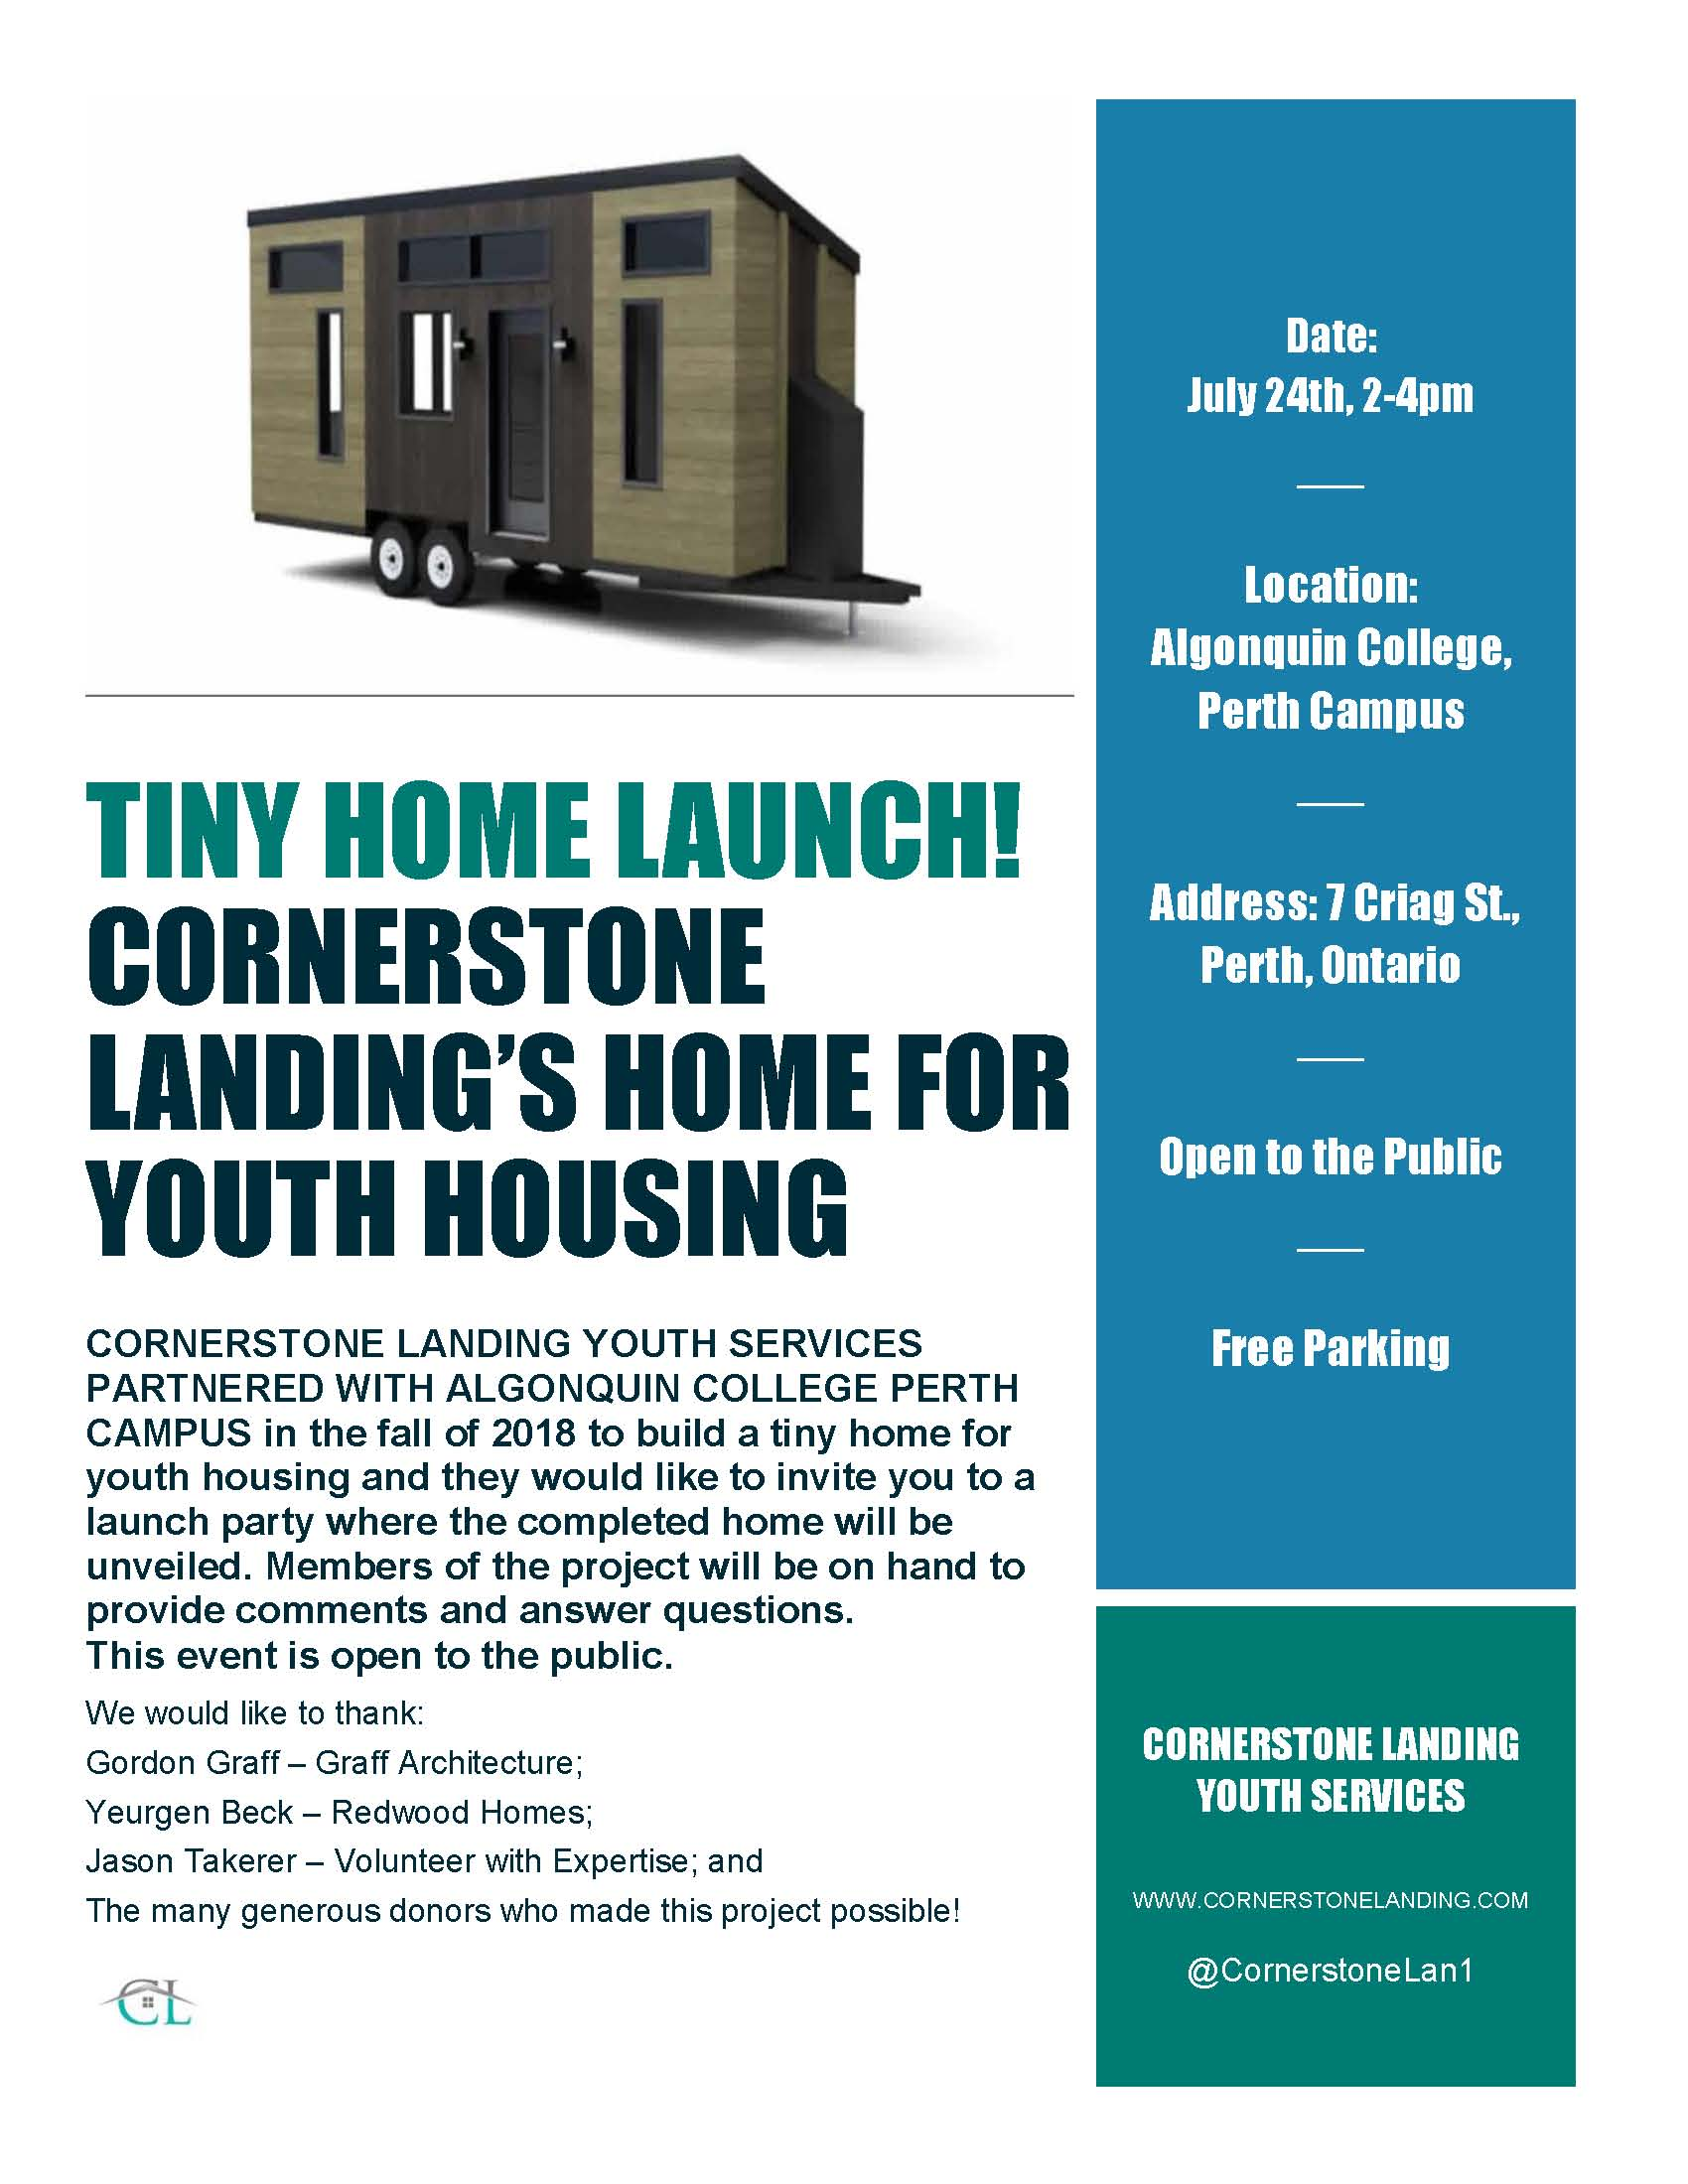 Tiny Home launch